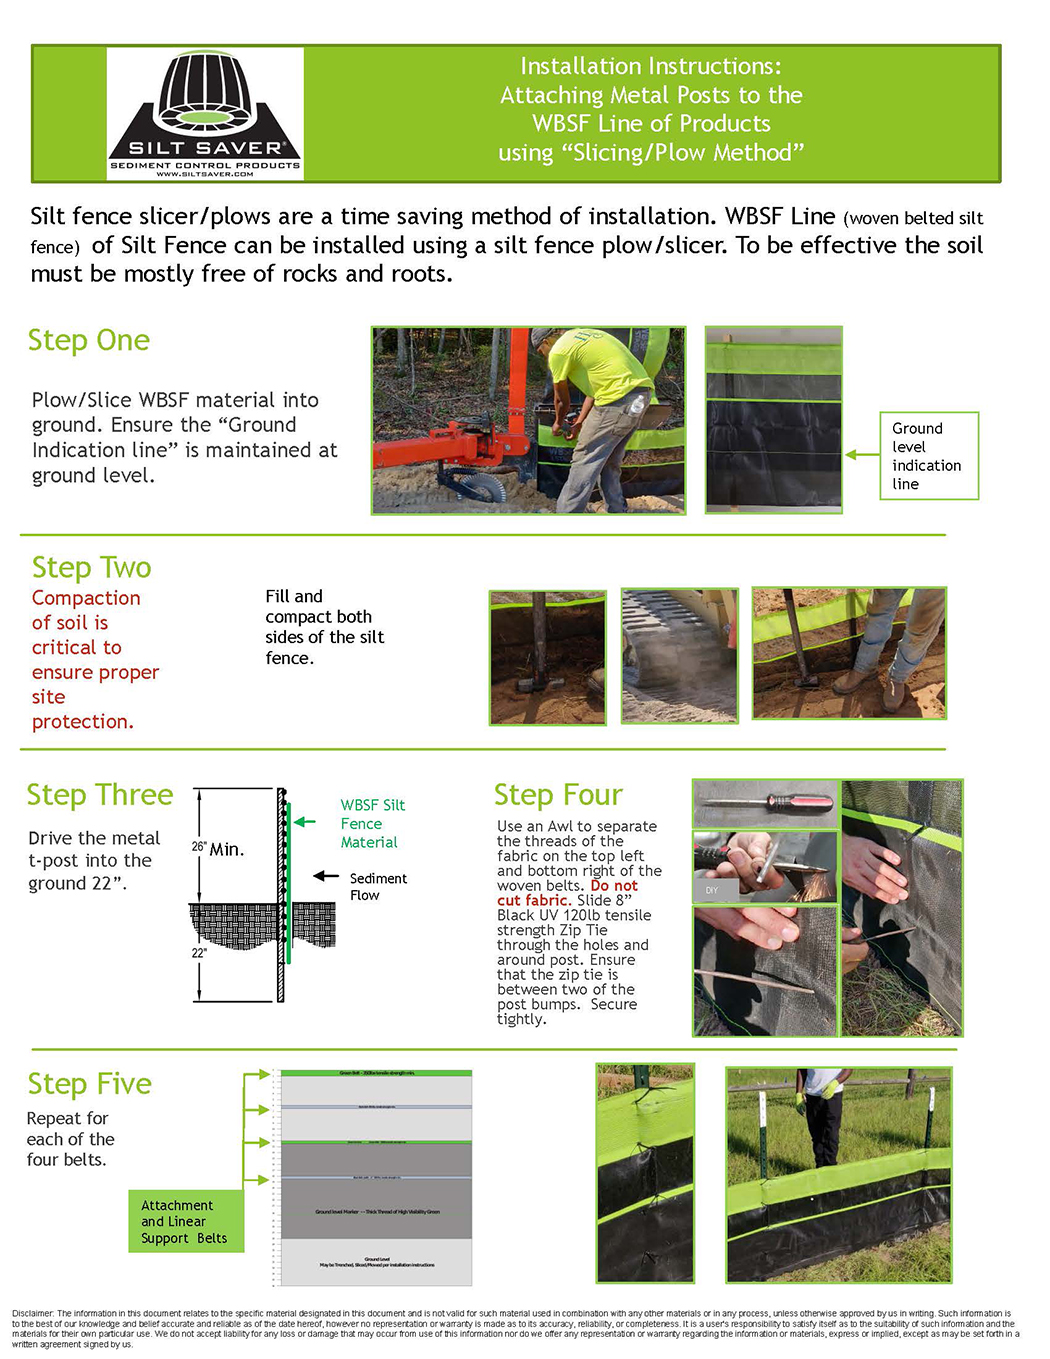 HOW TO INSTALL WBSF line of Products to Metal Posts using silt fence plow kp080320